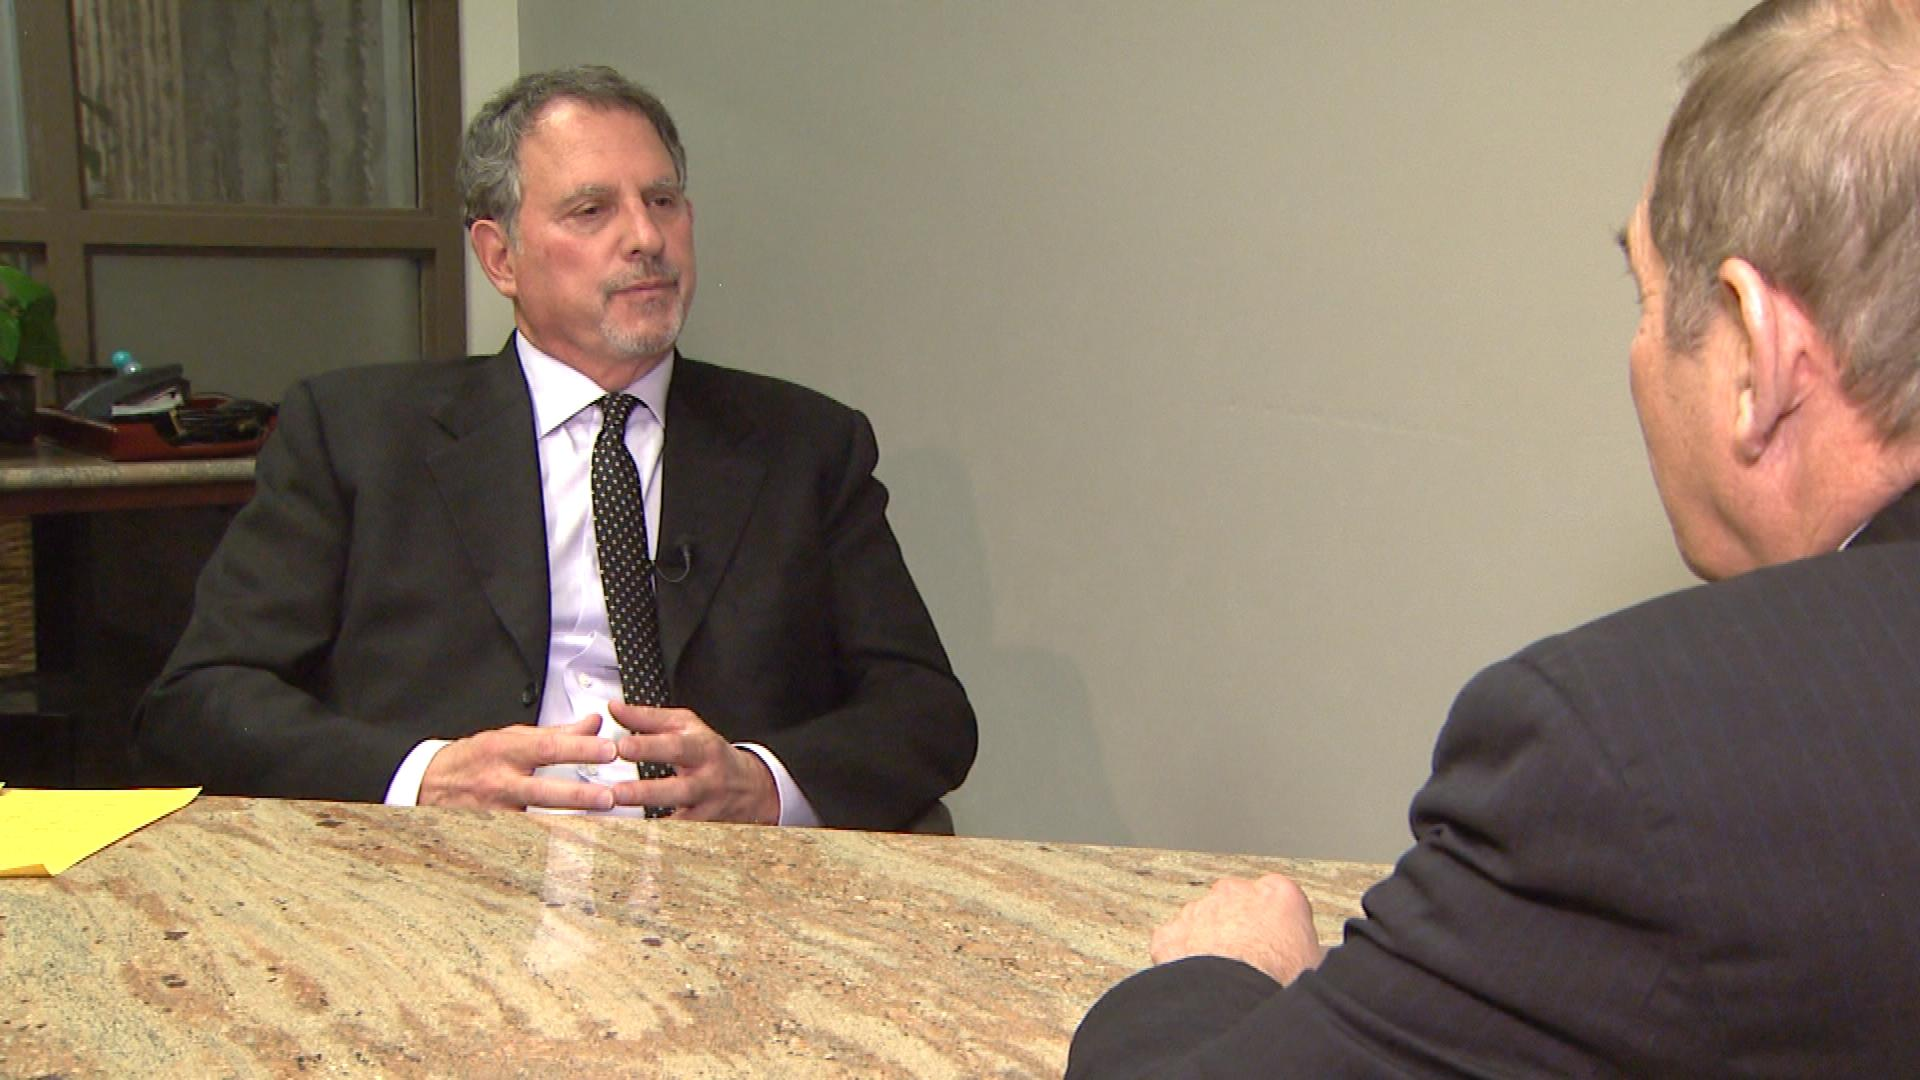 Colorado attorney Michael Burg is interviewed by CBS4's Rick Sallinger (credit: CBS)